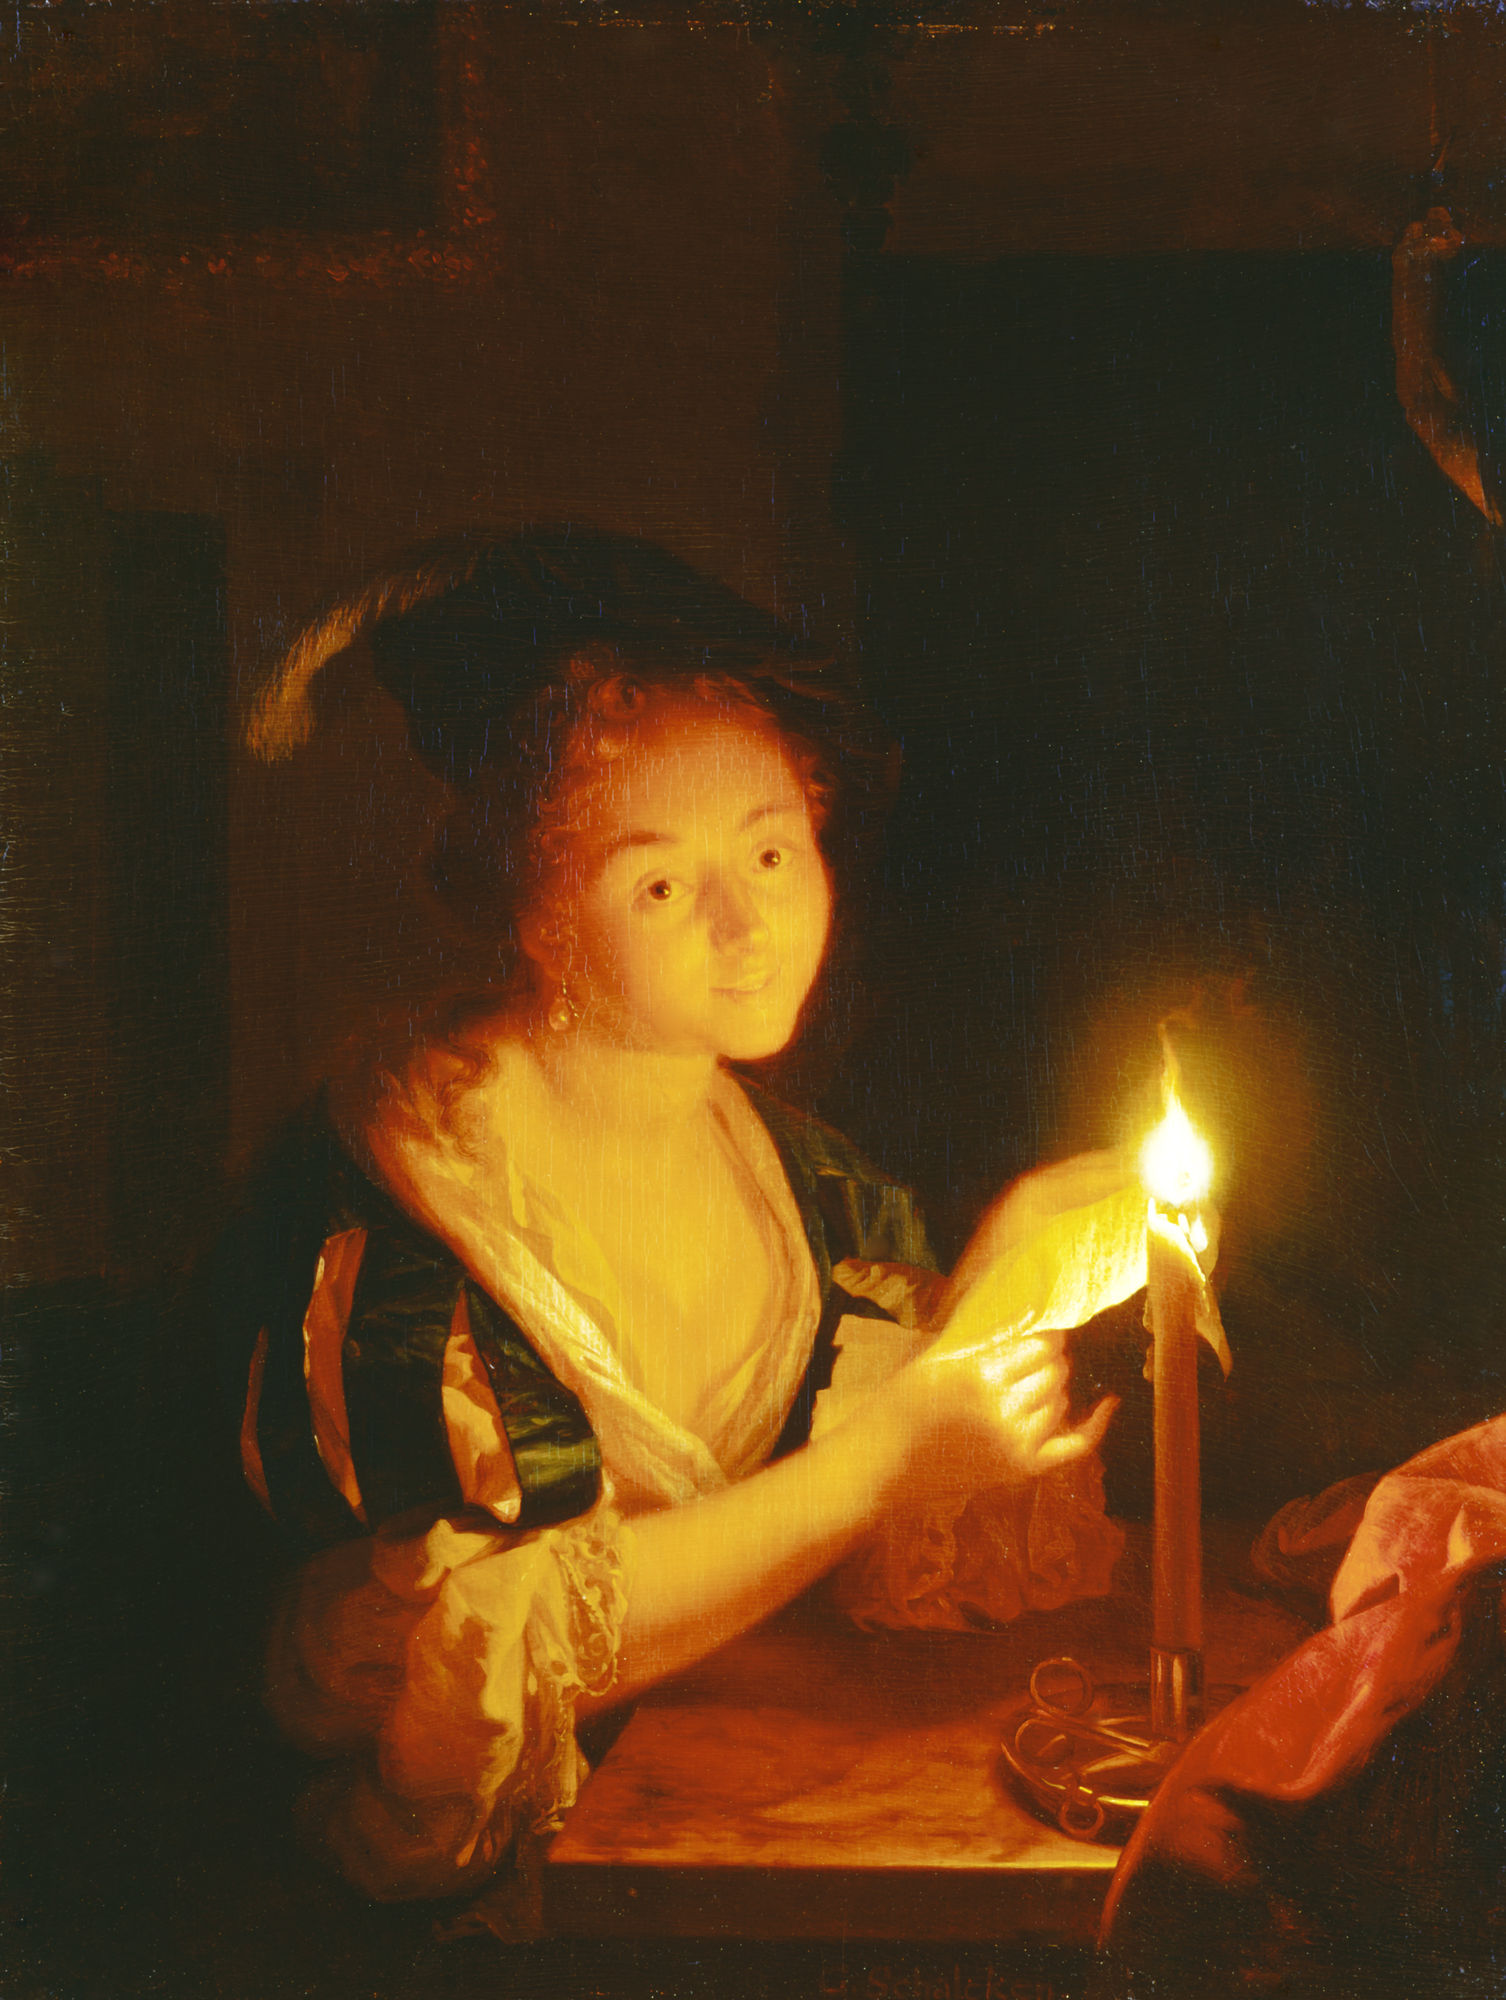 MARSIL - Wallraf-Richartz-Museum & Fondation Corboud featuring painter Godefridus Schalcken